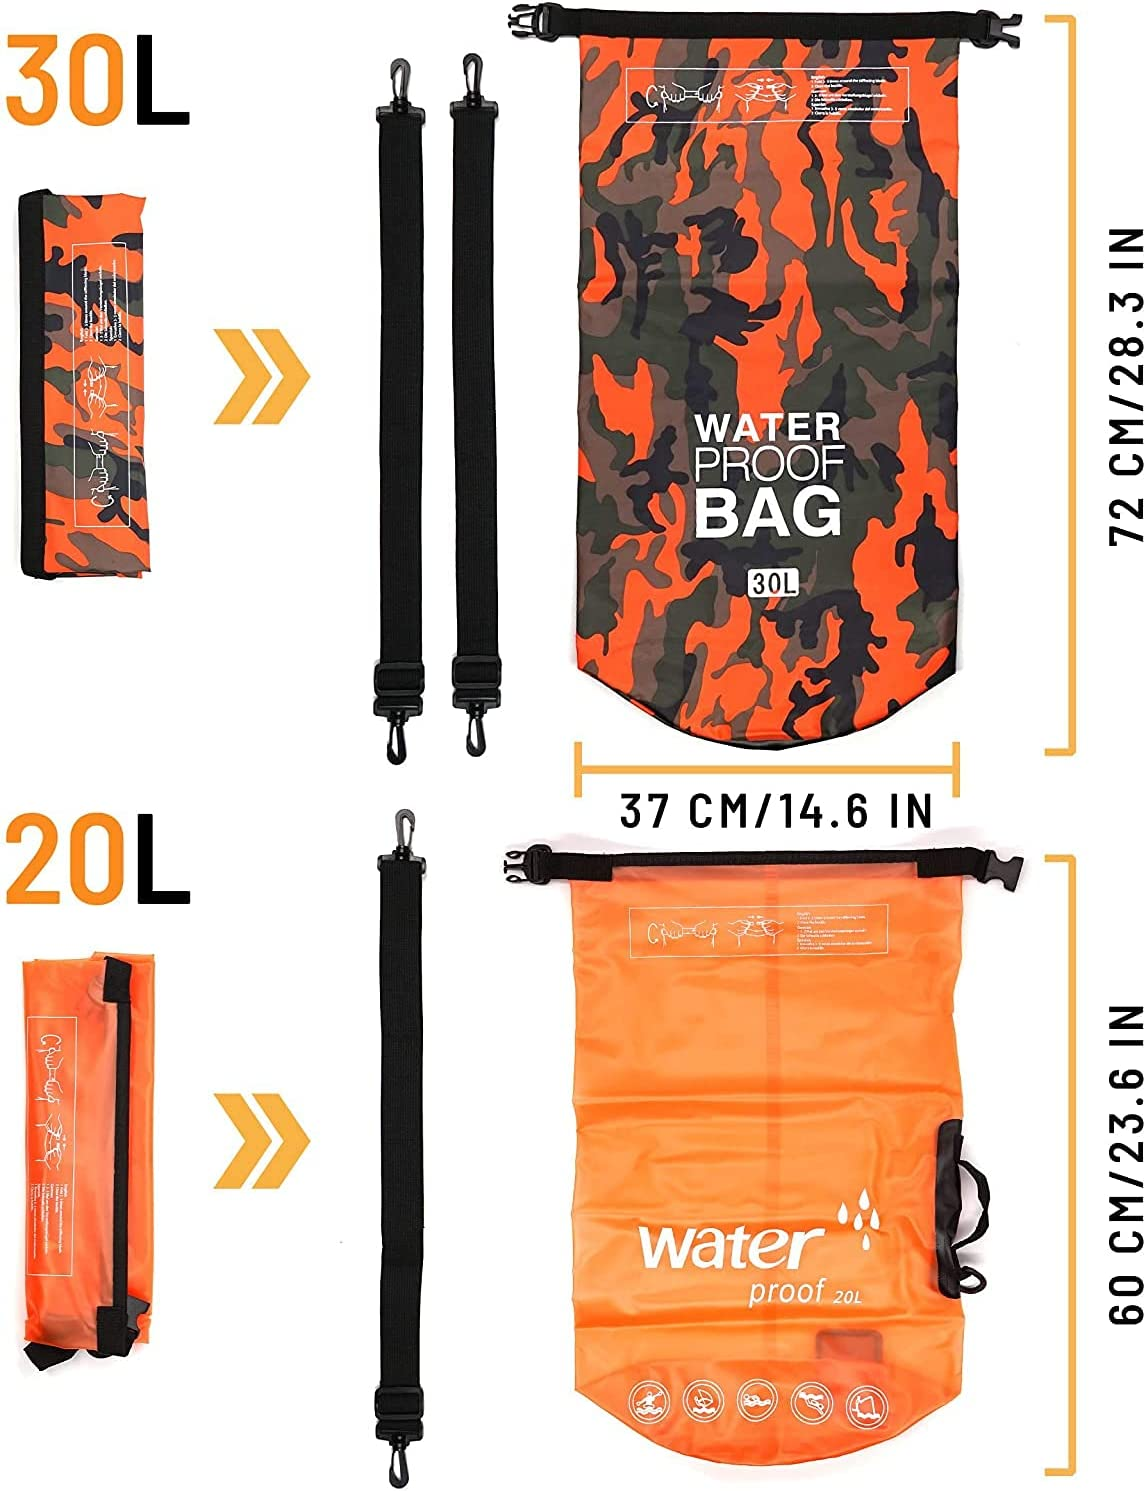 MARJAQE Waterproof Dry Bag Backpack Sac 20L//30L 2-Pack All Purpose Swimming Storage Sack Foldable for Floating Kayaking Fishing Canoeing Hiking Camping Boating Rafting Beach